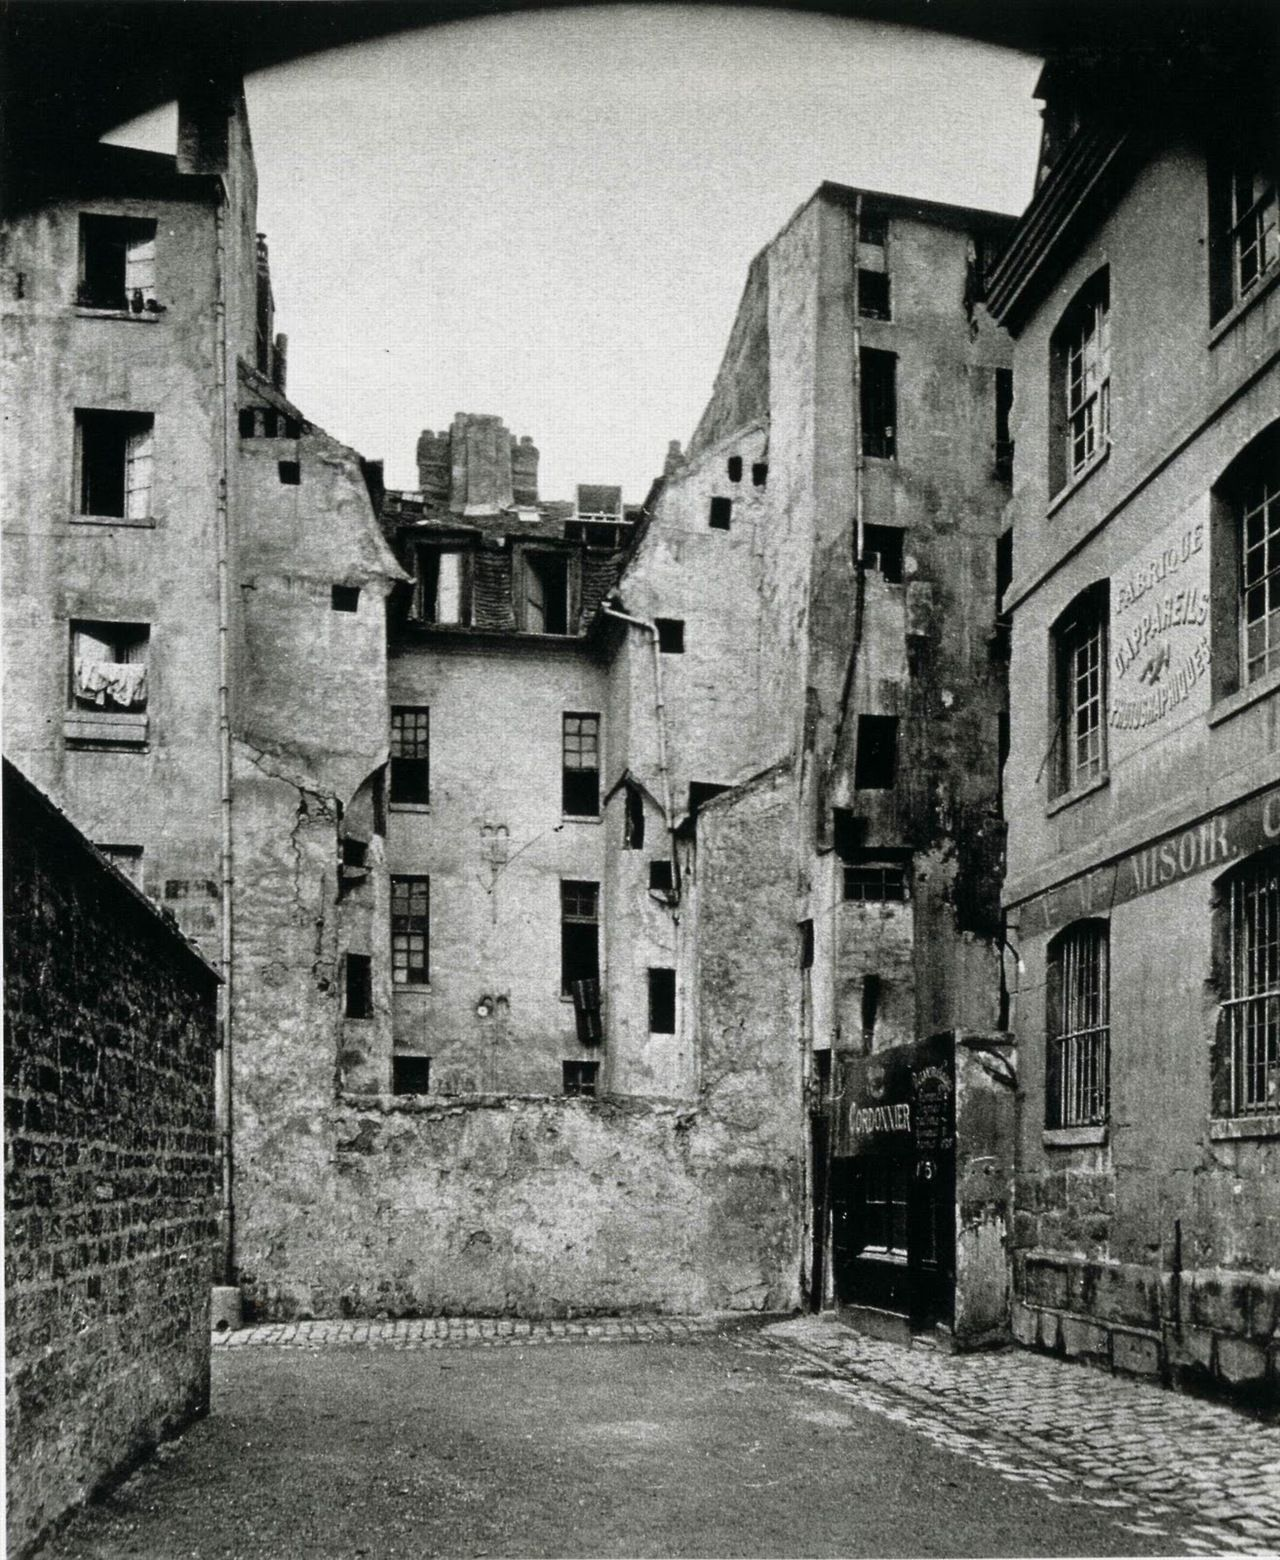 Architecture Photography History eugene atget. documenting the architecture and street scenes of